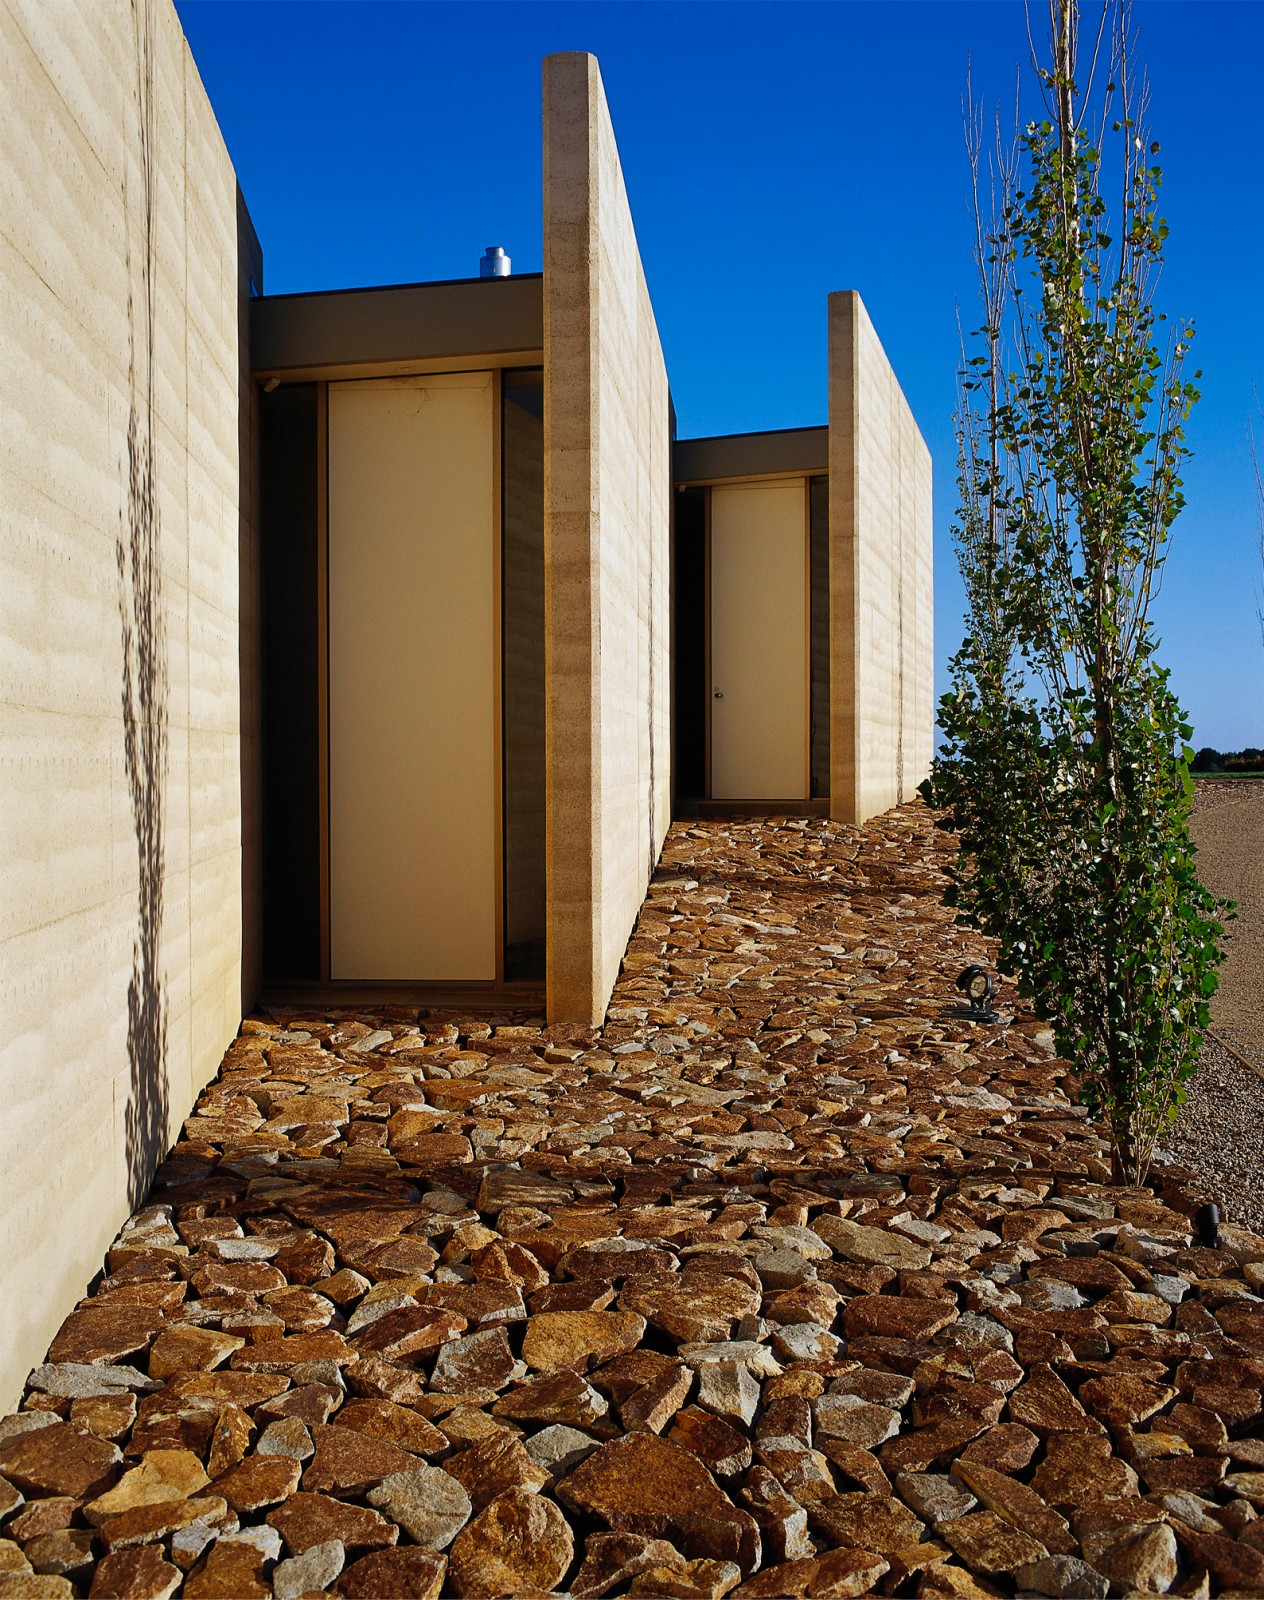 Earth house jolson architectural styles